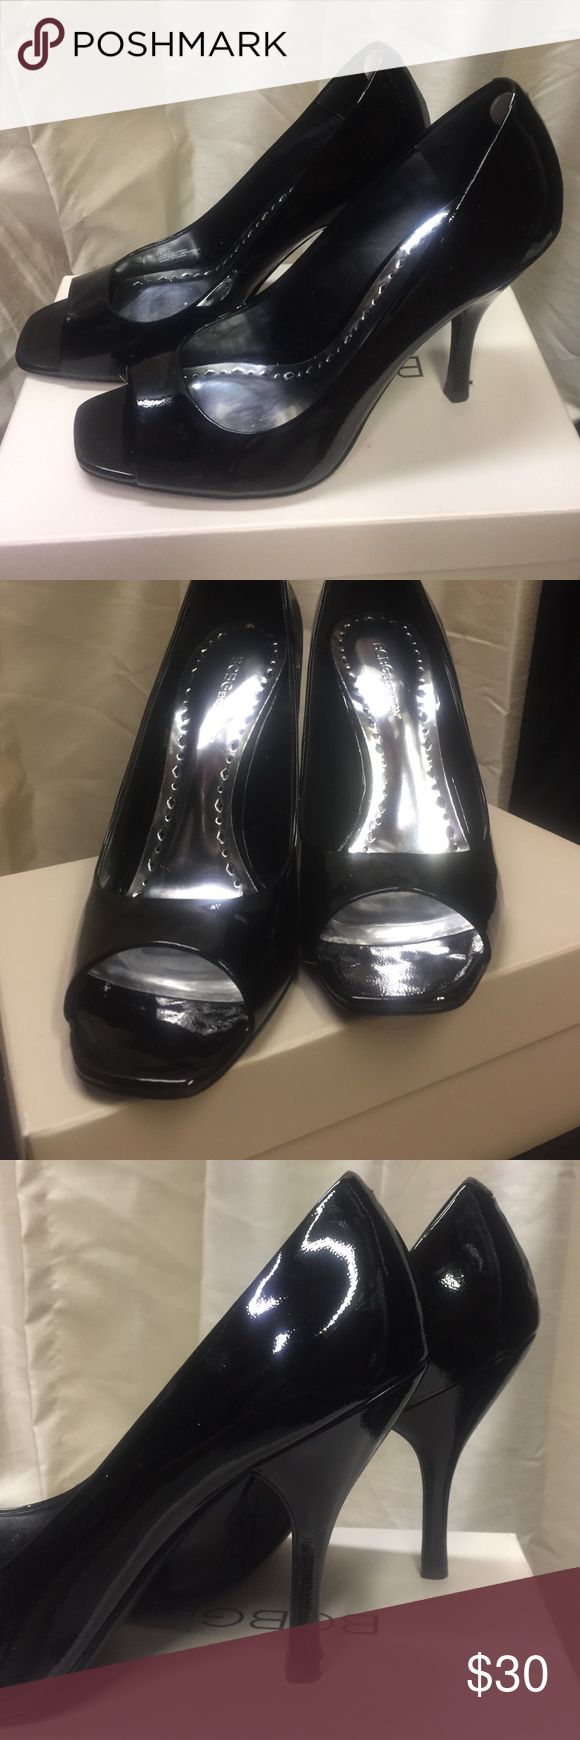 BCBE generation black patten leather pumps Black patten leather heels, slip on shoe with peep toe. Excellent condition, only wore once BCBGeneration Shoes Heels